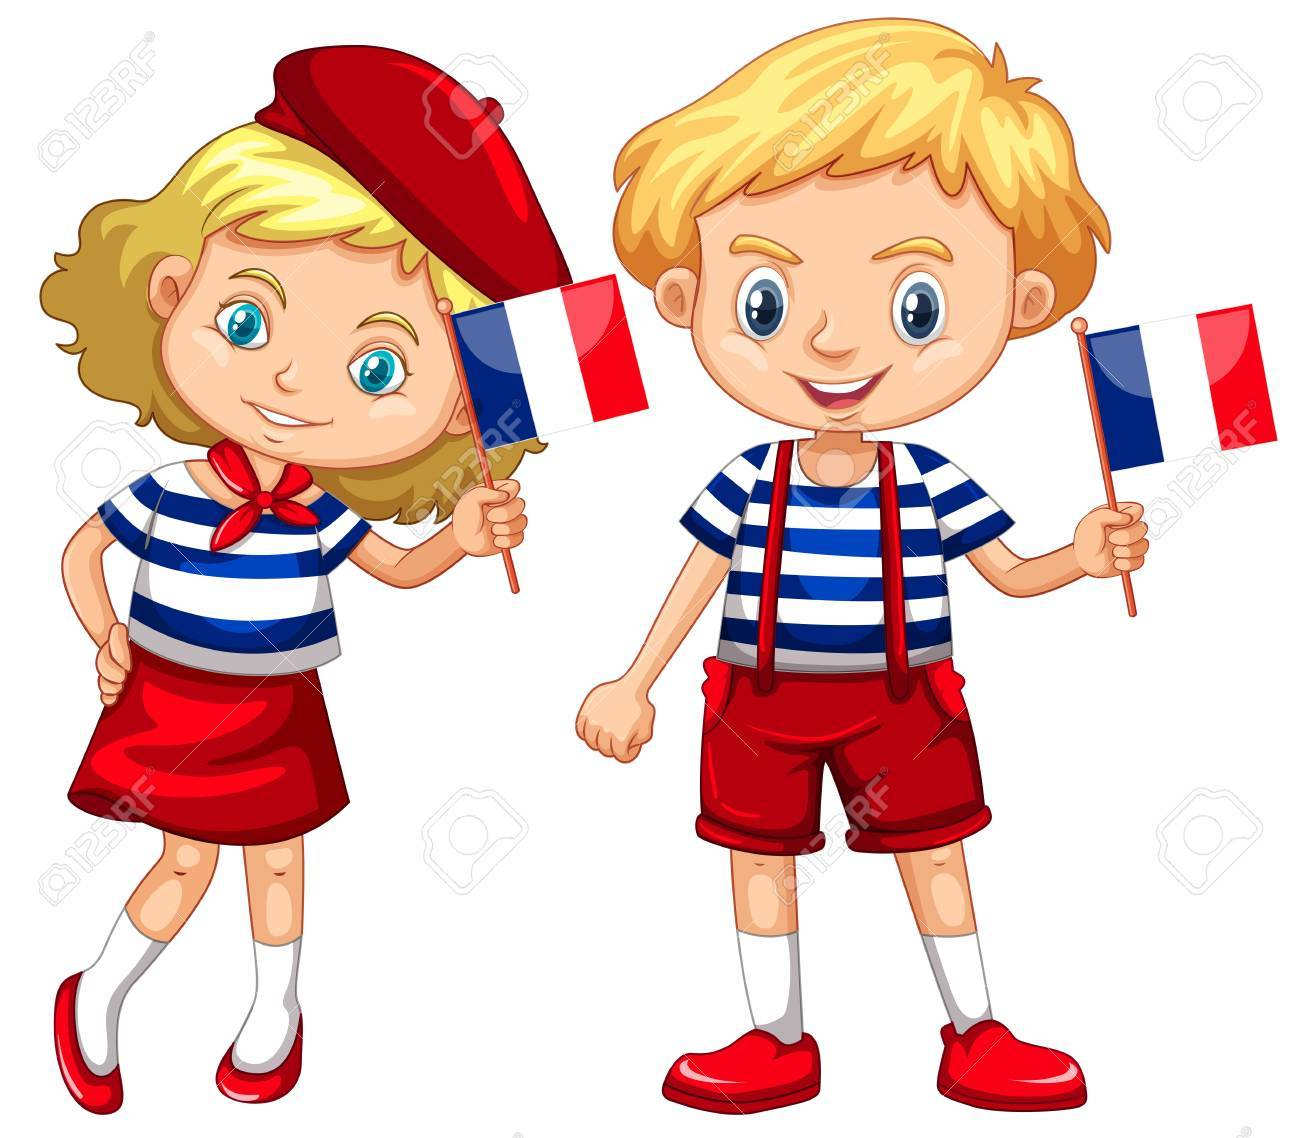 Boy and girl with flag of France illustration.